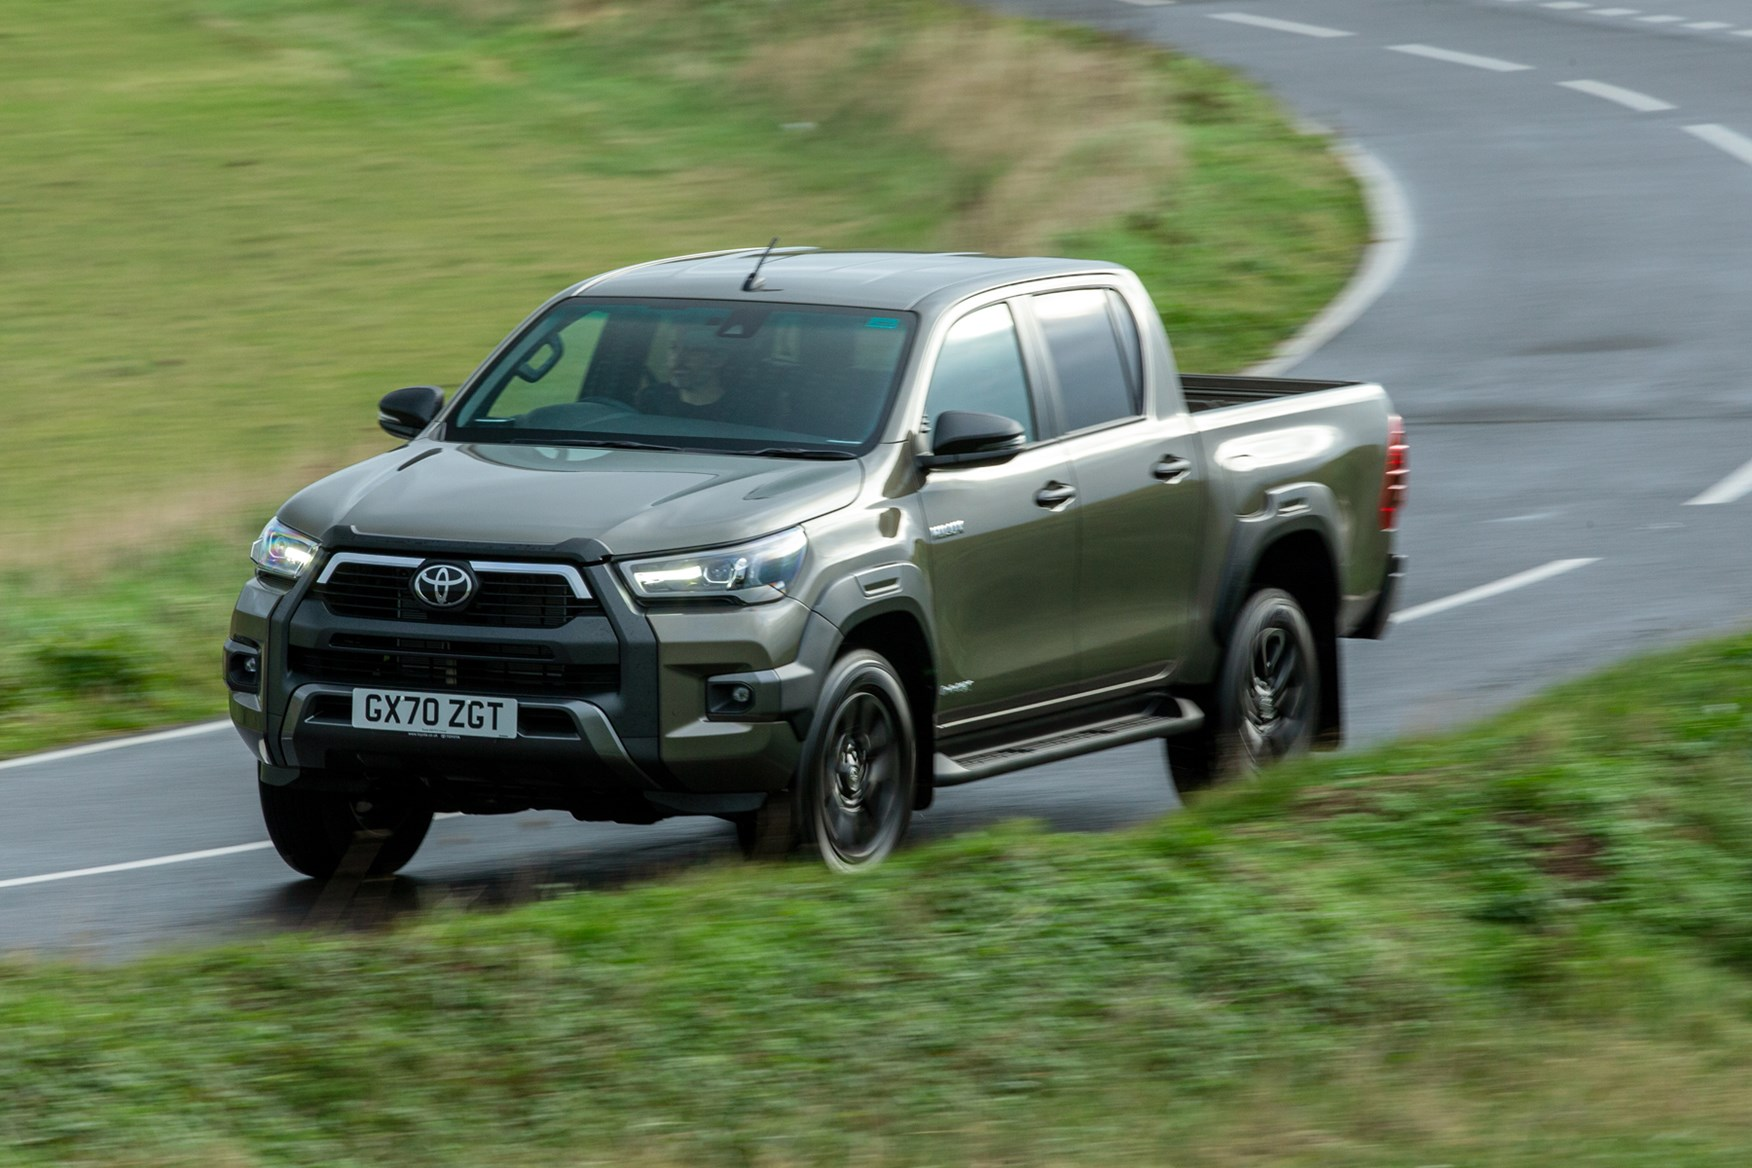 Toyota Hilux review, 2020 facelift, Invincible X, driving round corner, front view, bronze